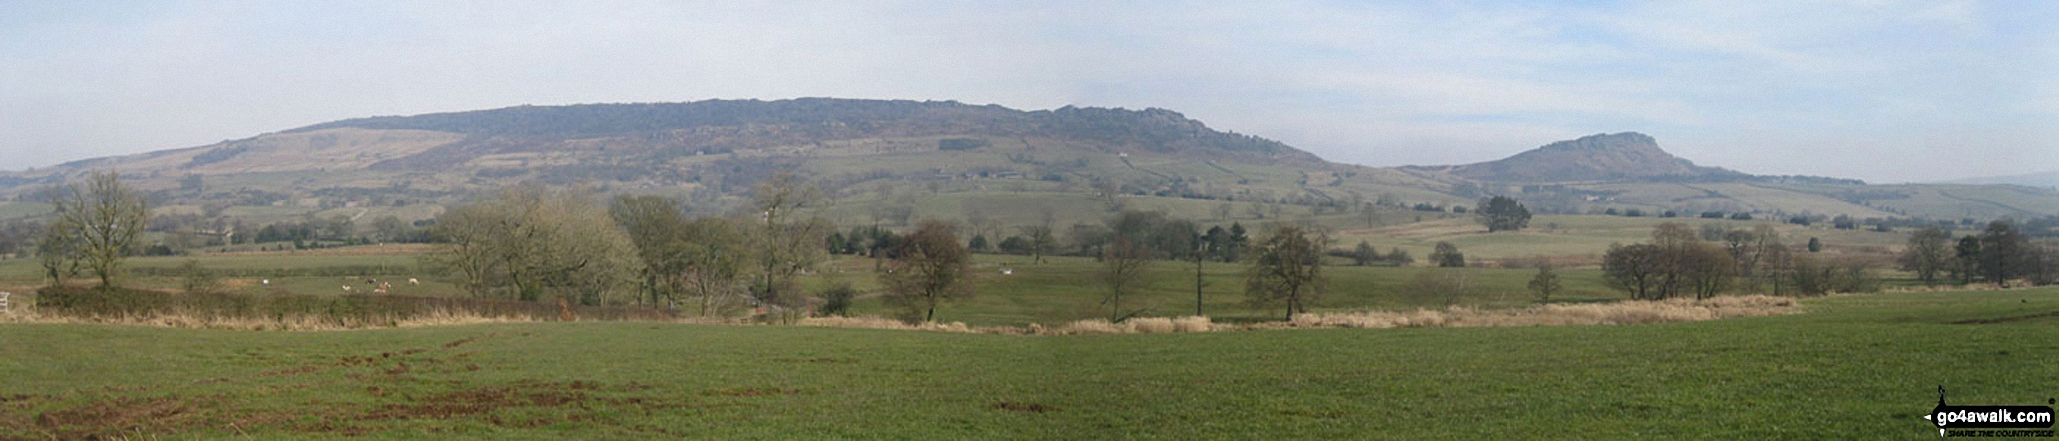 The Roaches and Hen Cloud from the lane north of Meerbrook